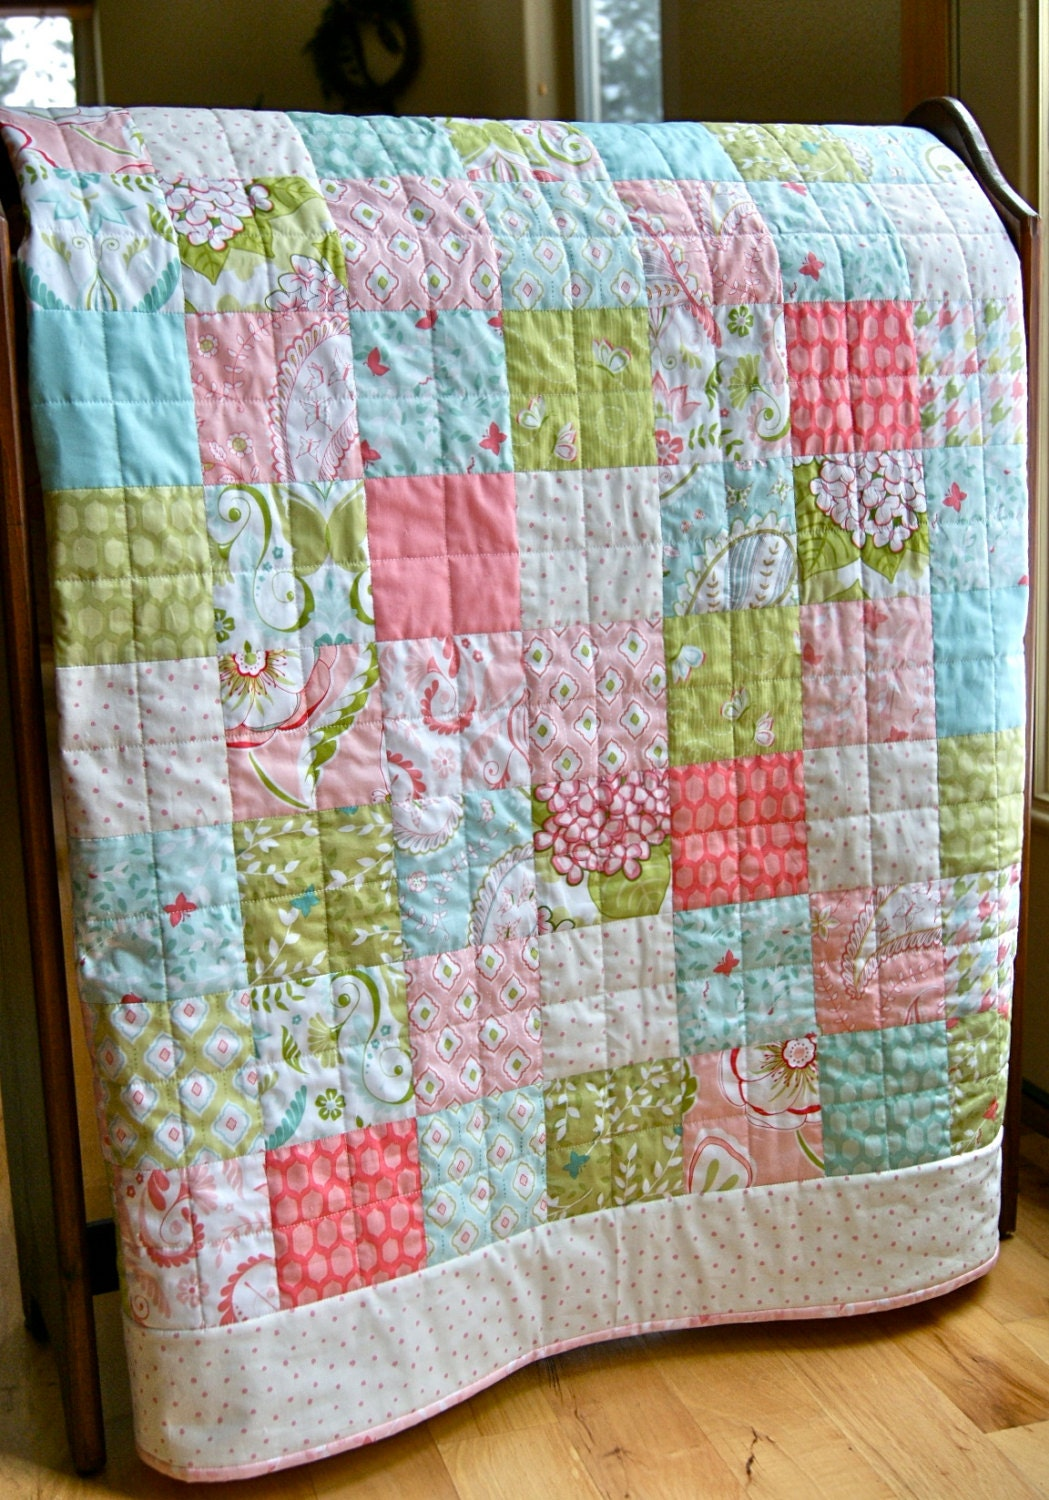 Quilt Baby Toddler Lap Bella Butterfly Patty Sloniger Handmade